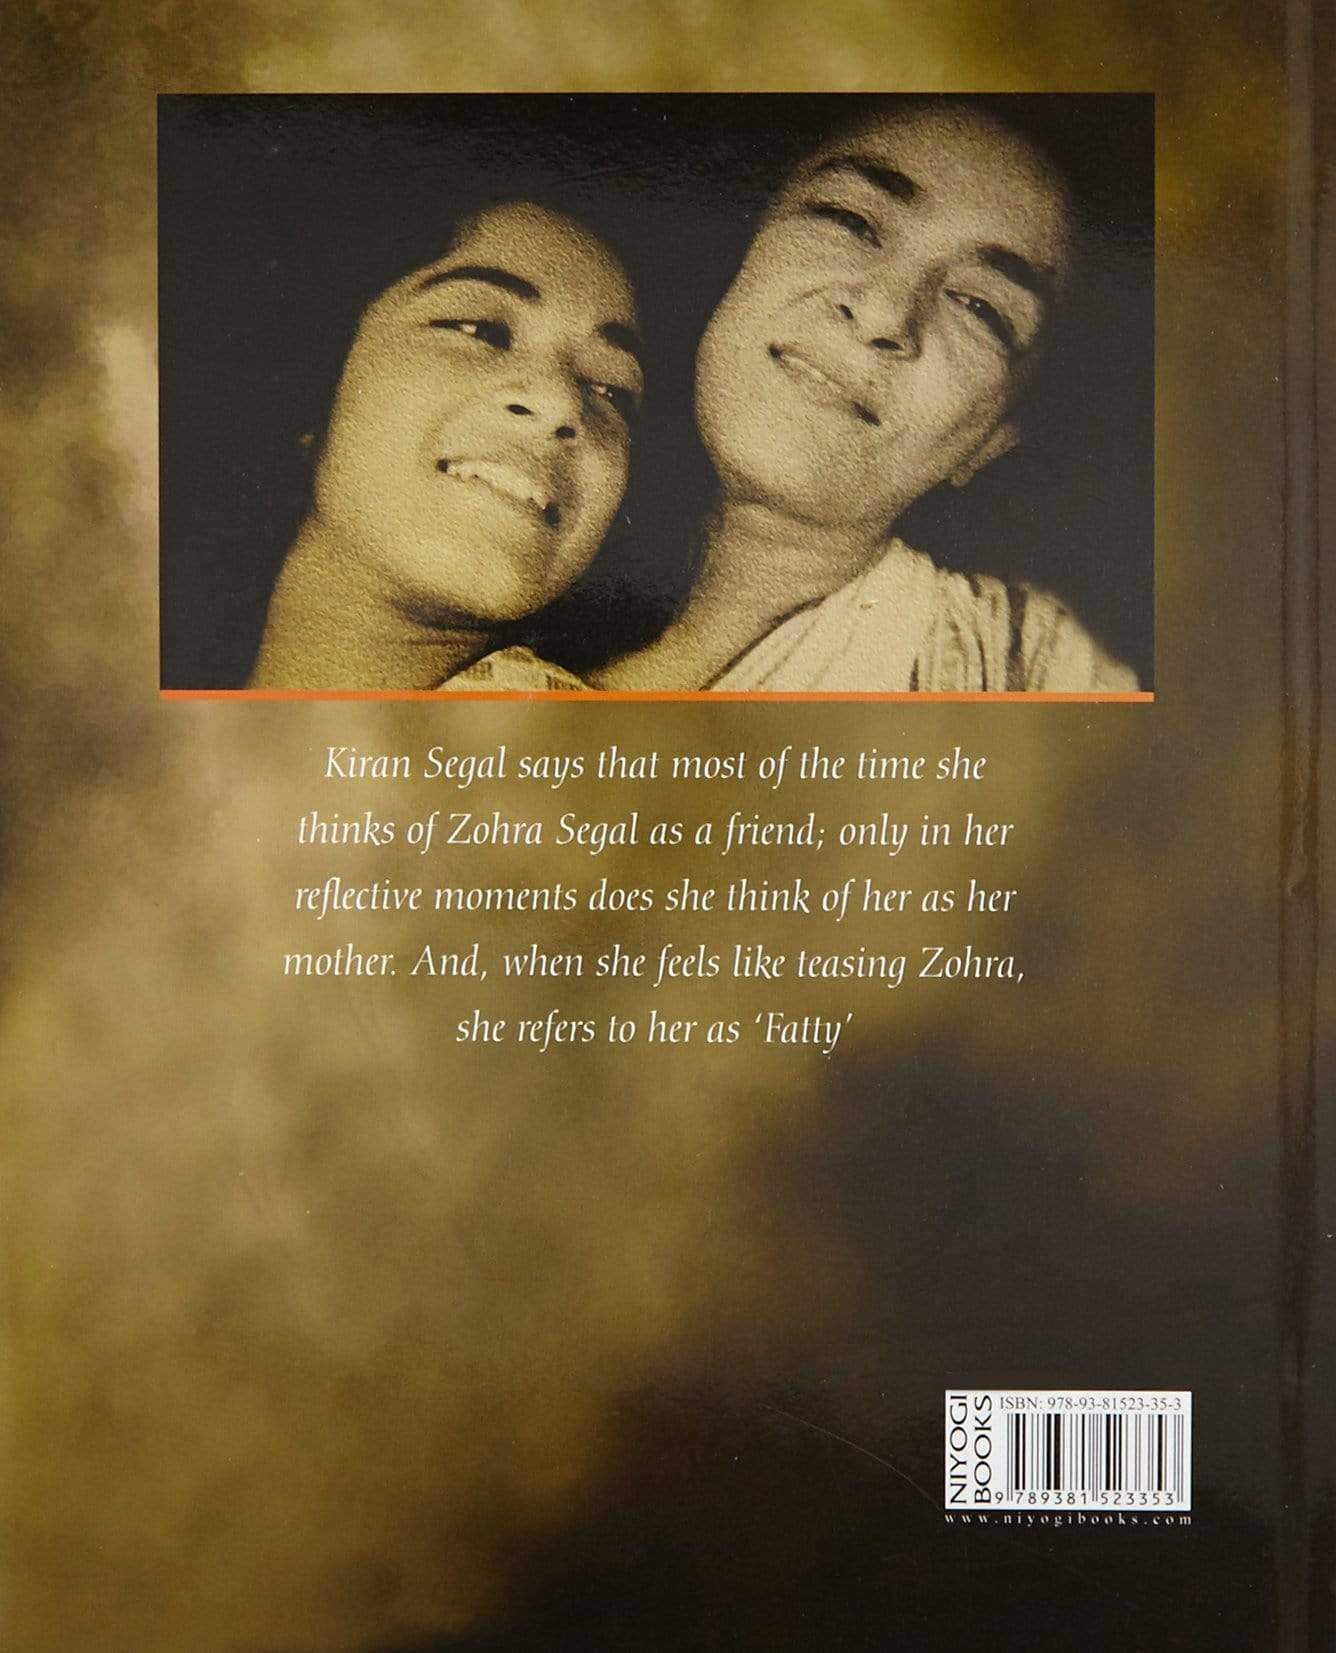 Buy Zohra Segal 'Fatty' book online at low prices in India | Bookish Books Niyogi Publications 9789381523353